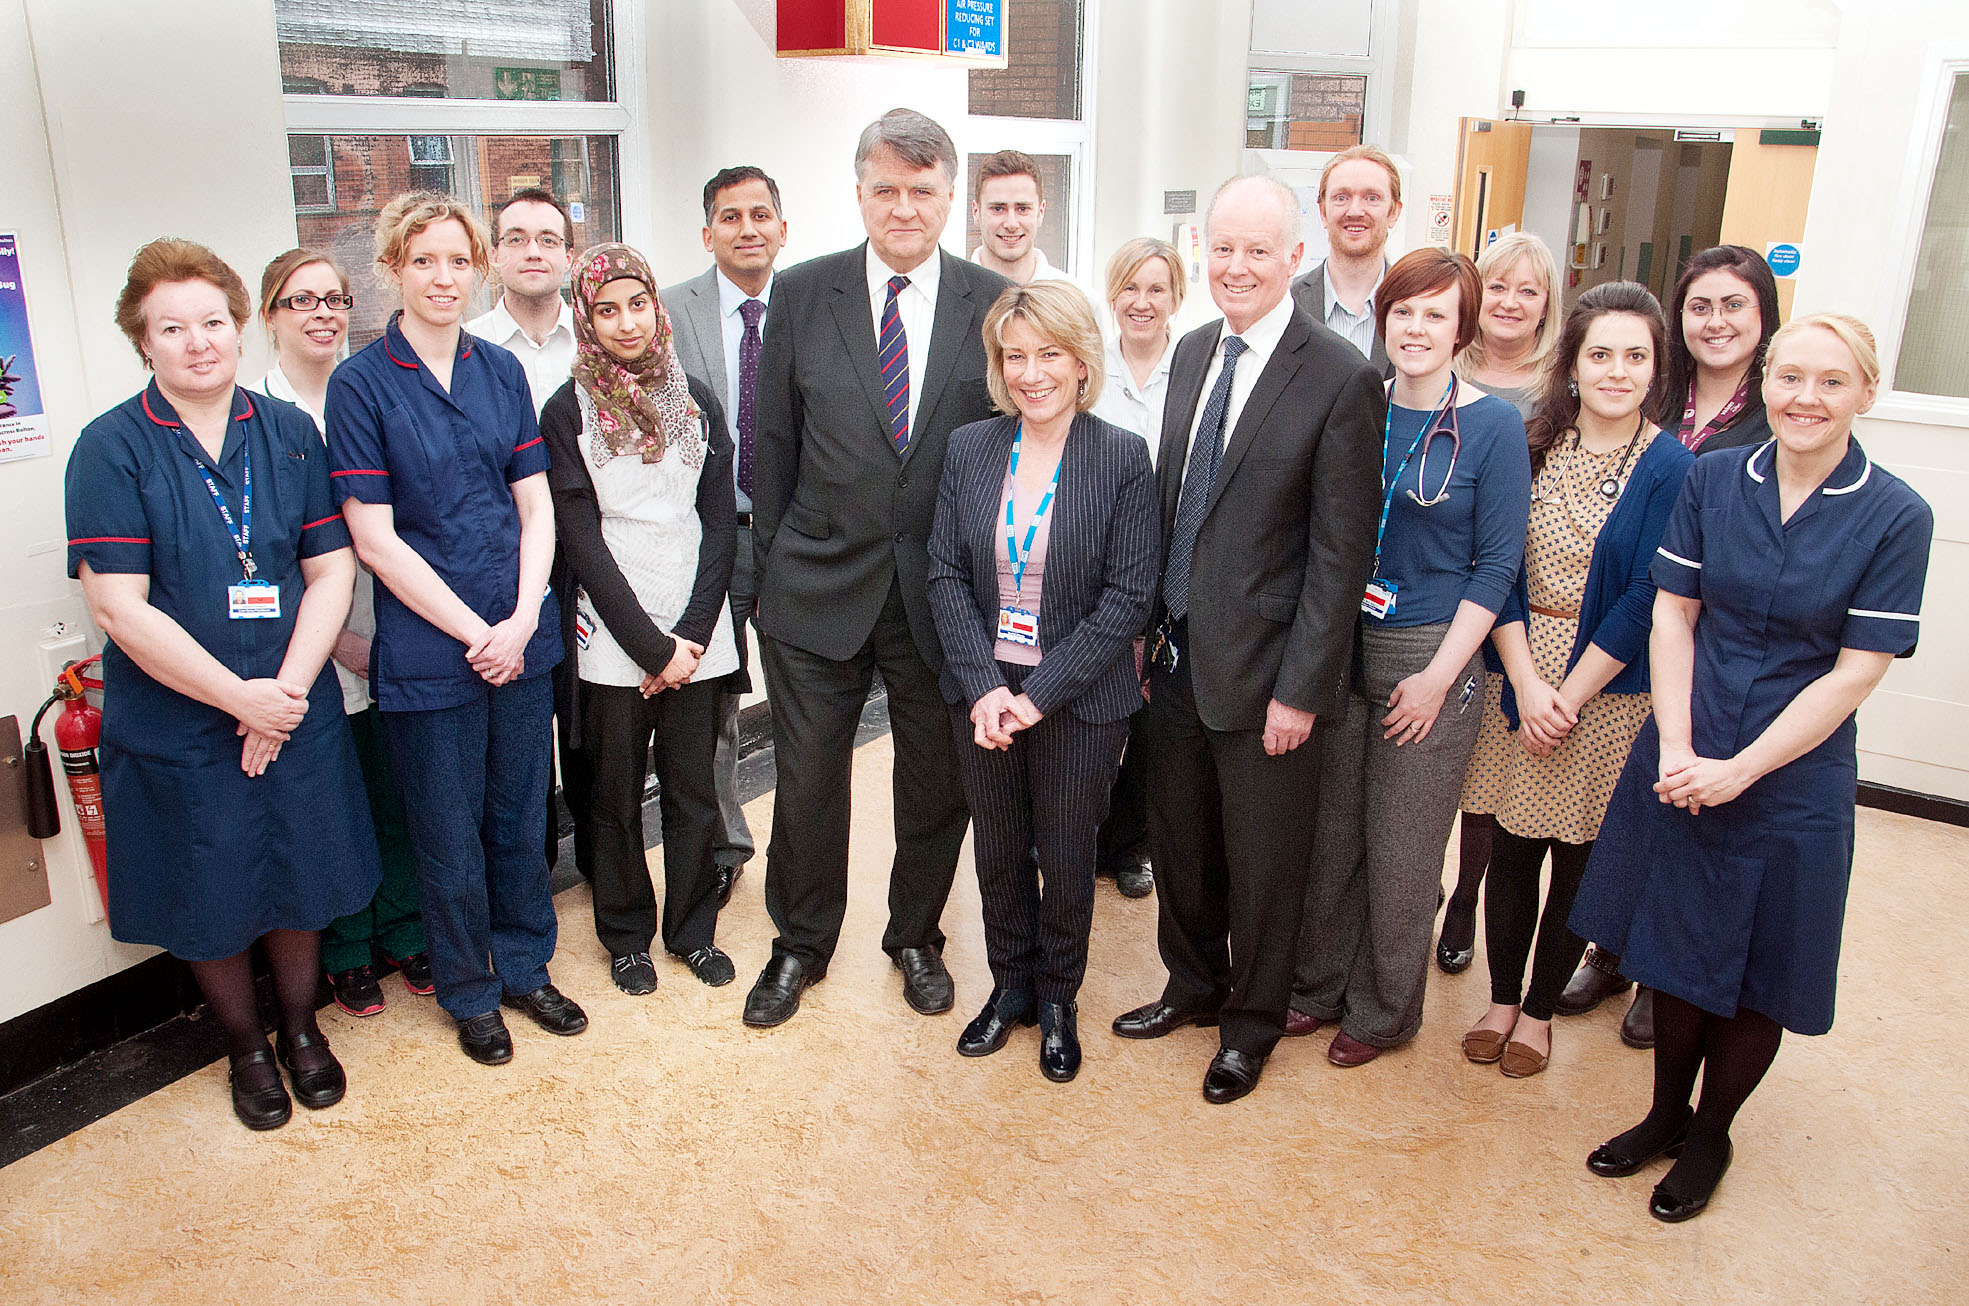 The award-winning team at the Royal Bolton Hospital